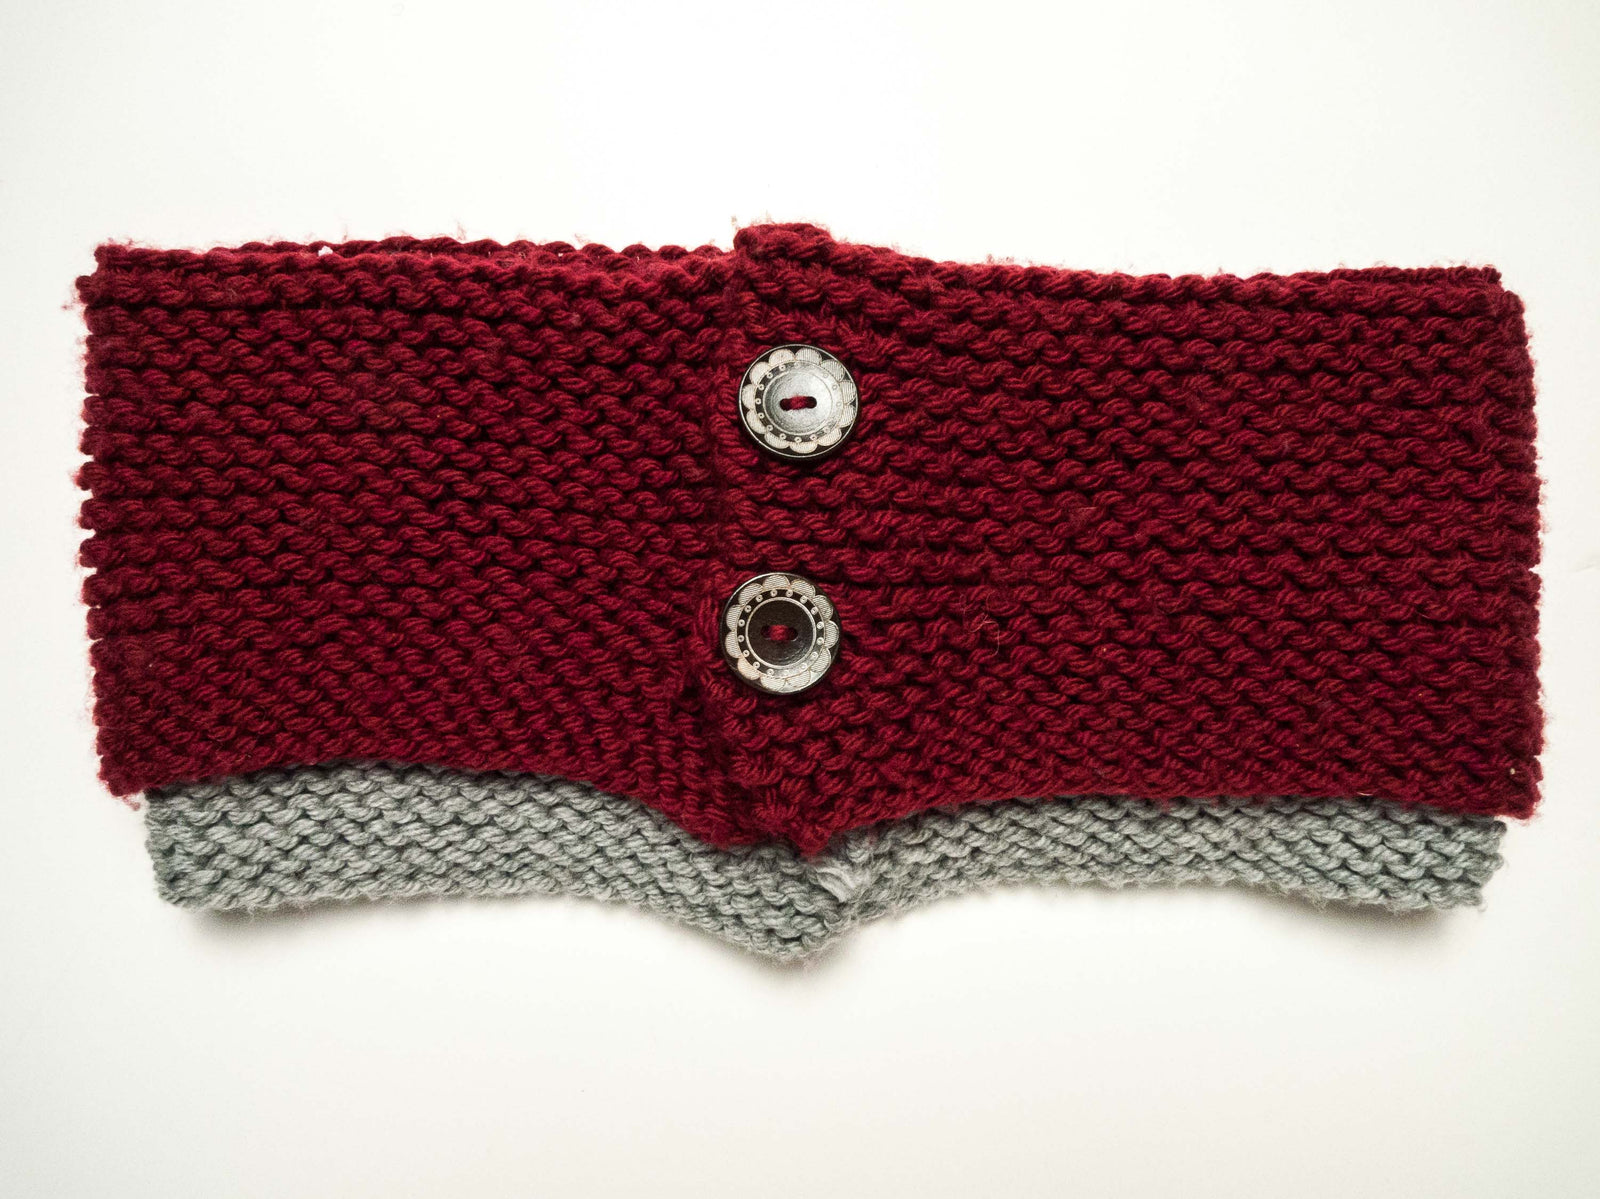 Beginning Knitting Kit - Super Simple Two-Color Cowl